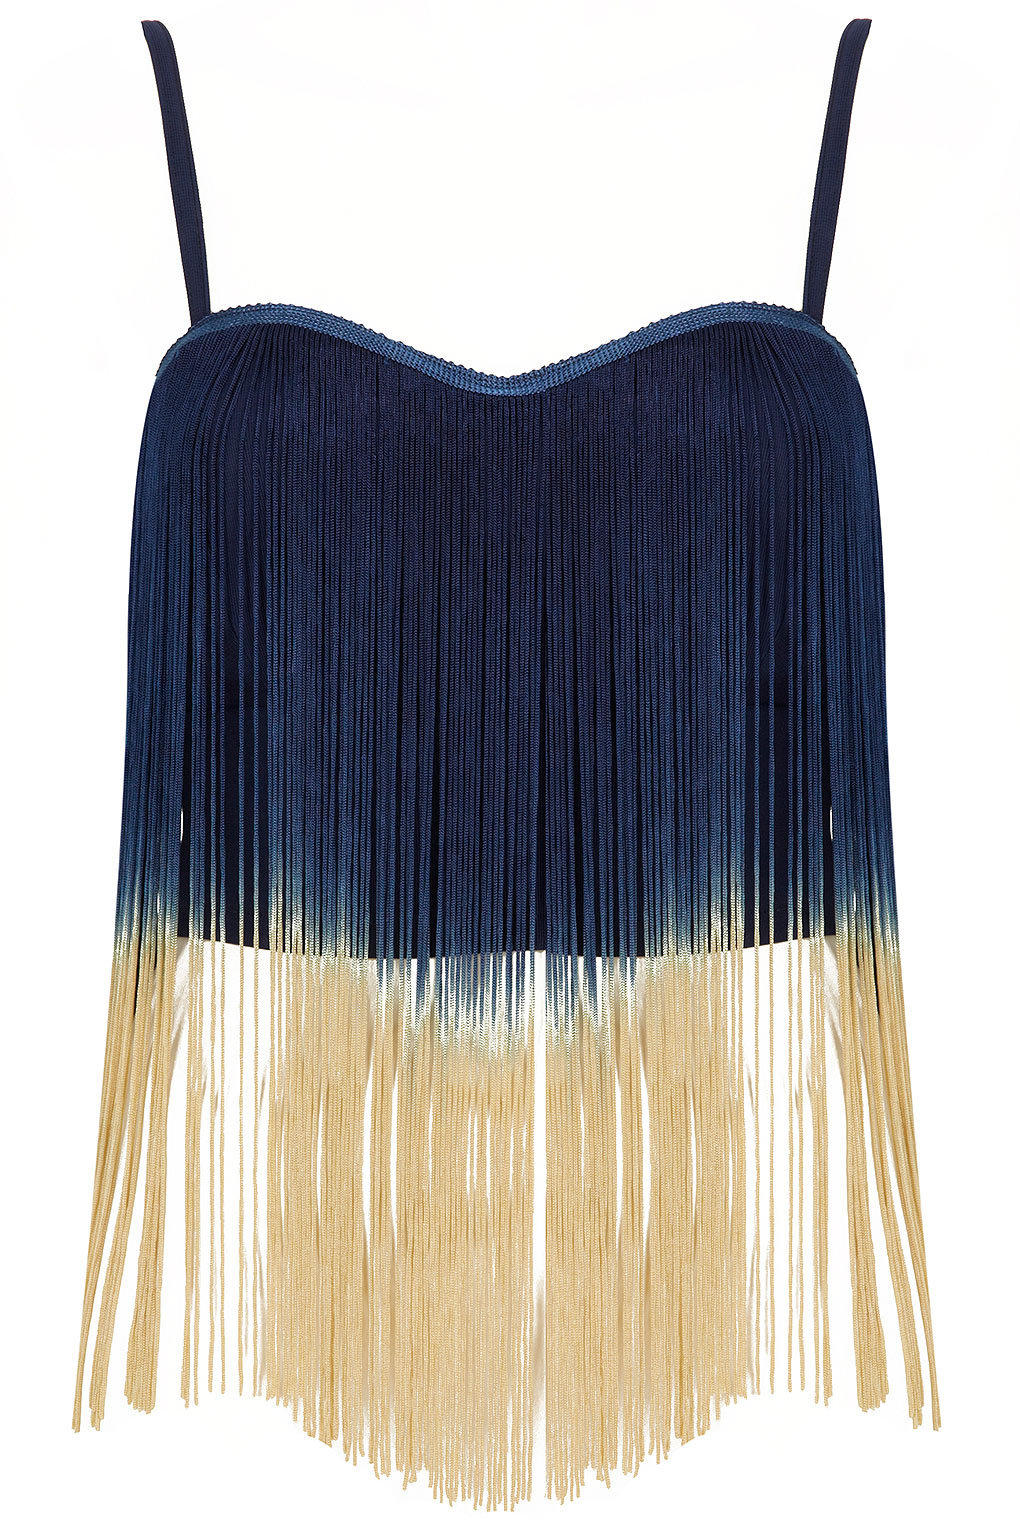 Fringe Crop Top By Rare Tops From TOPSHOP Tops